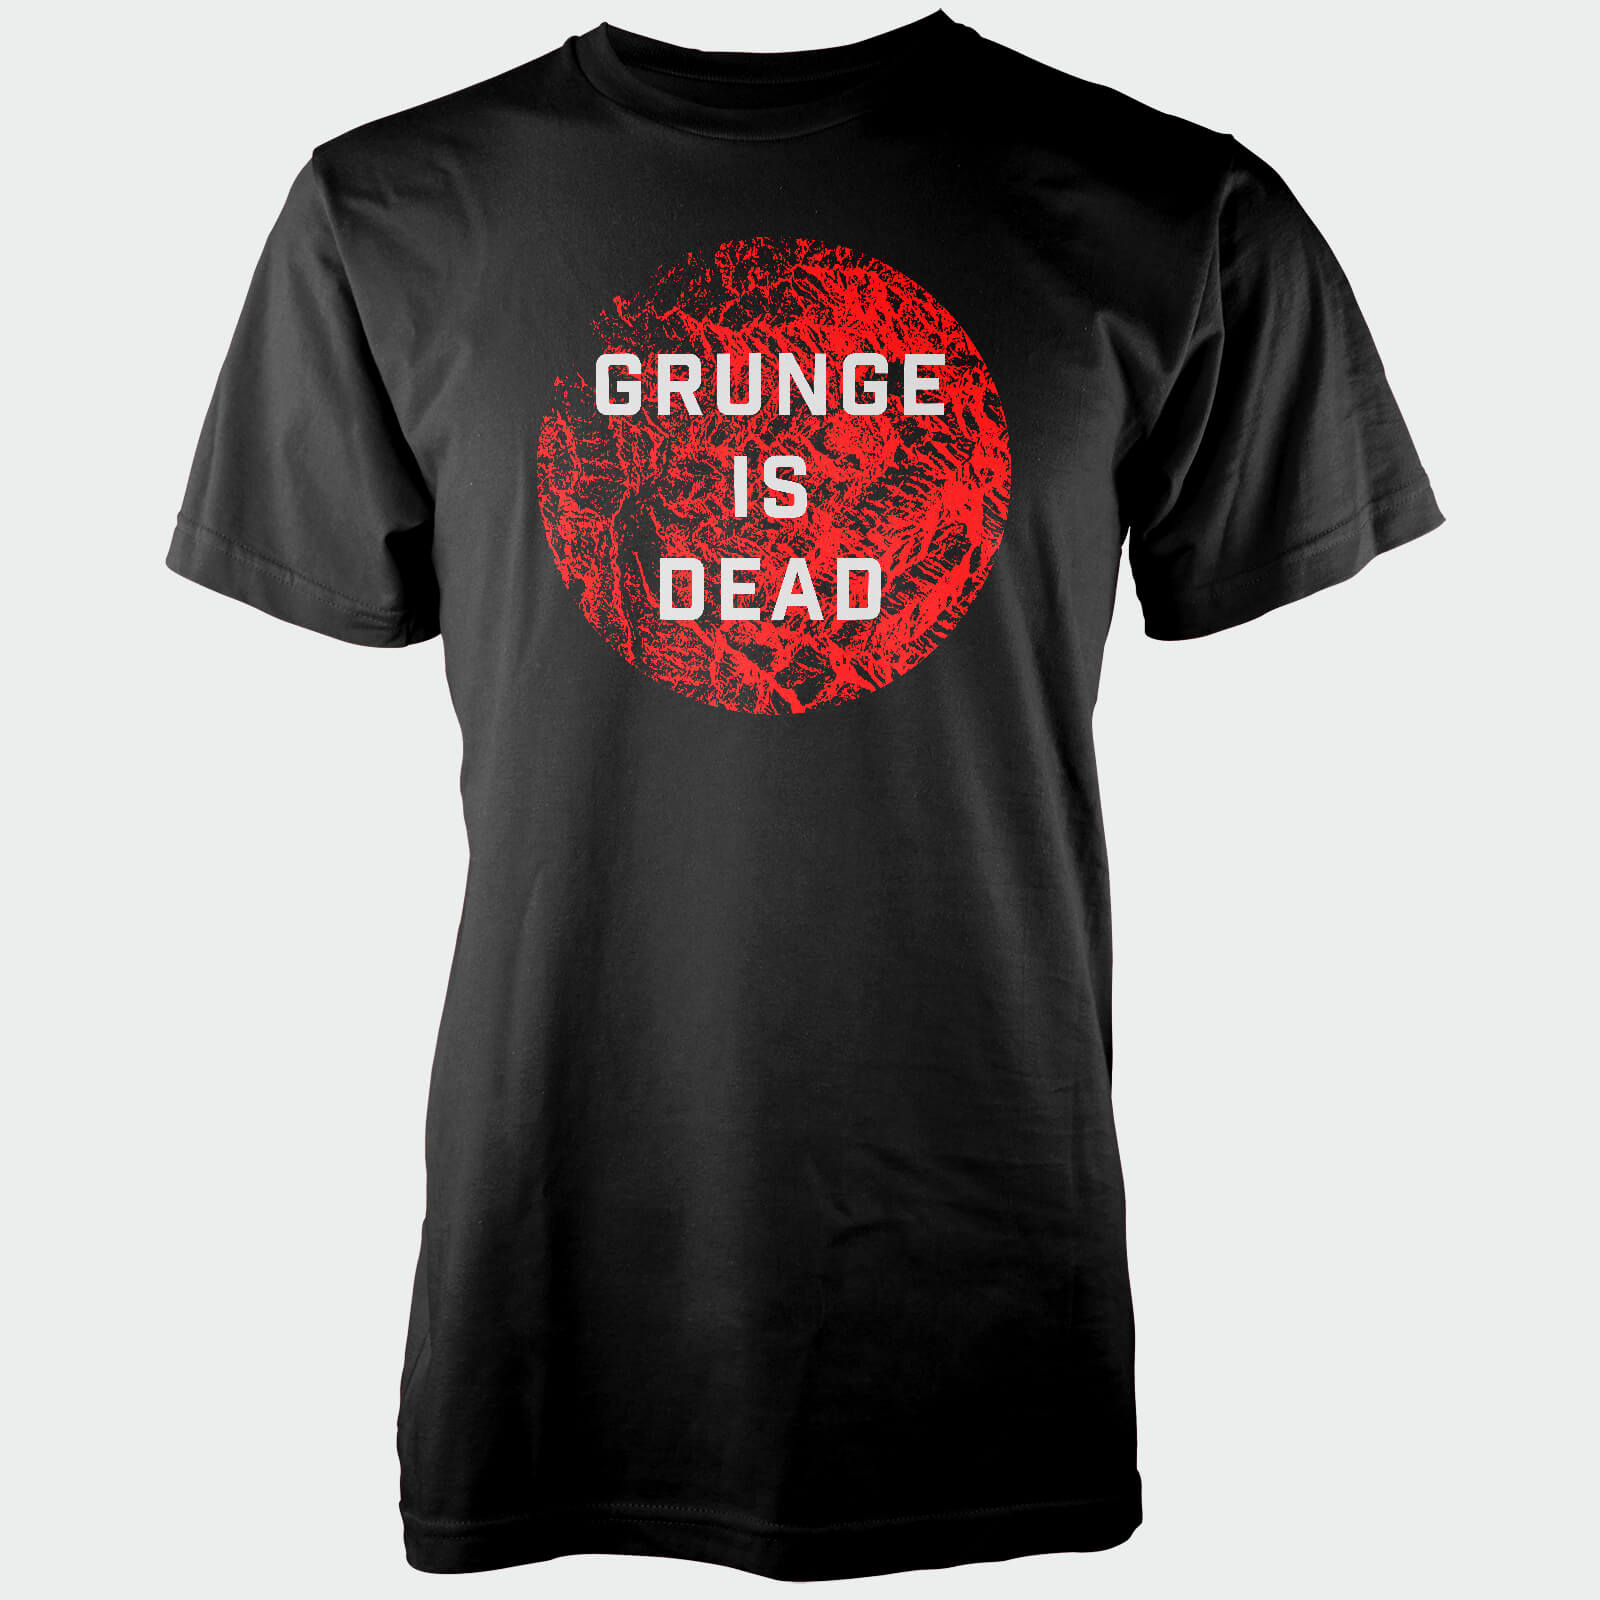 Grunge Is Dead Black T-Shirt